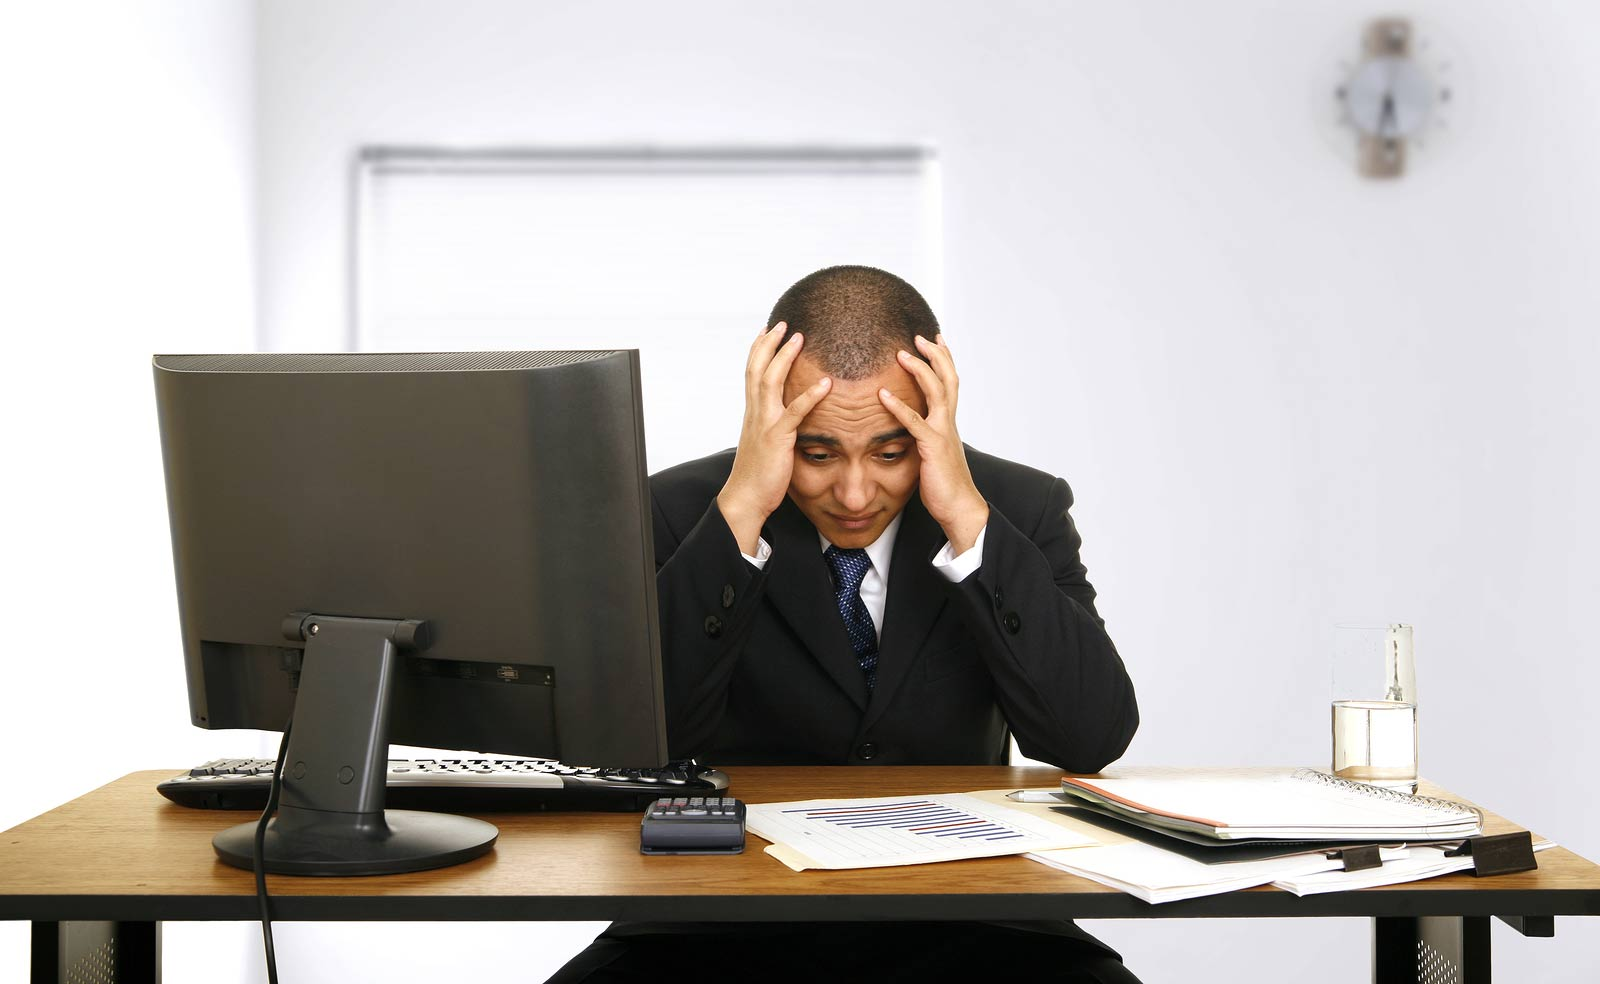 2 quick tips on leaving work related stress in the office